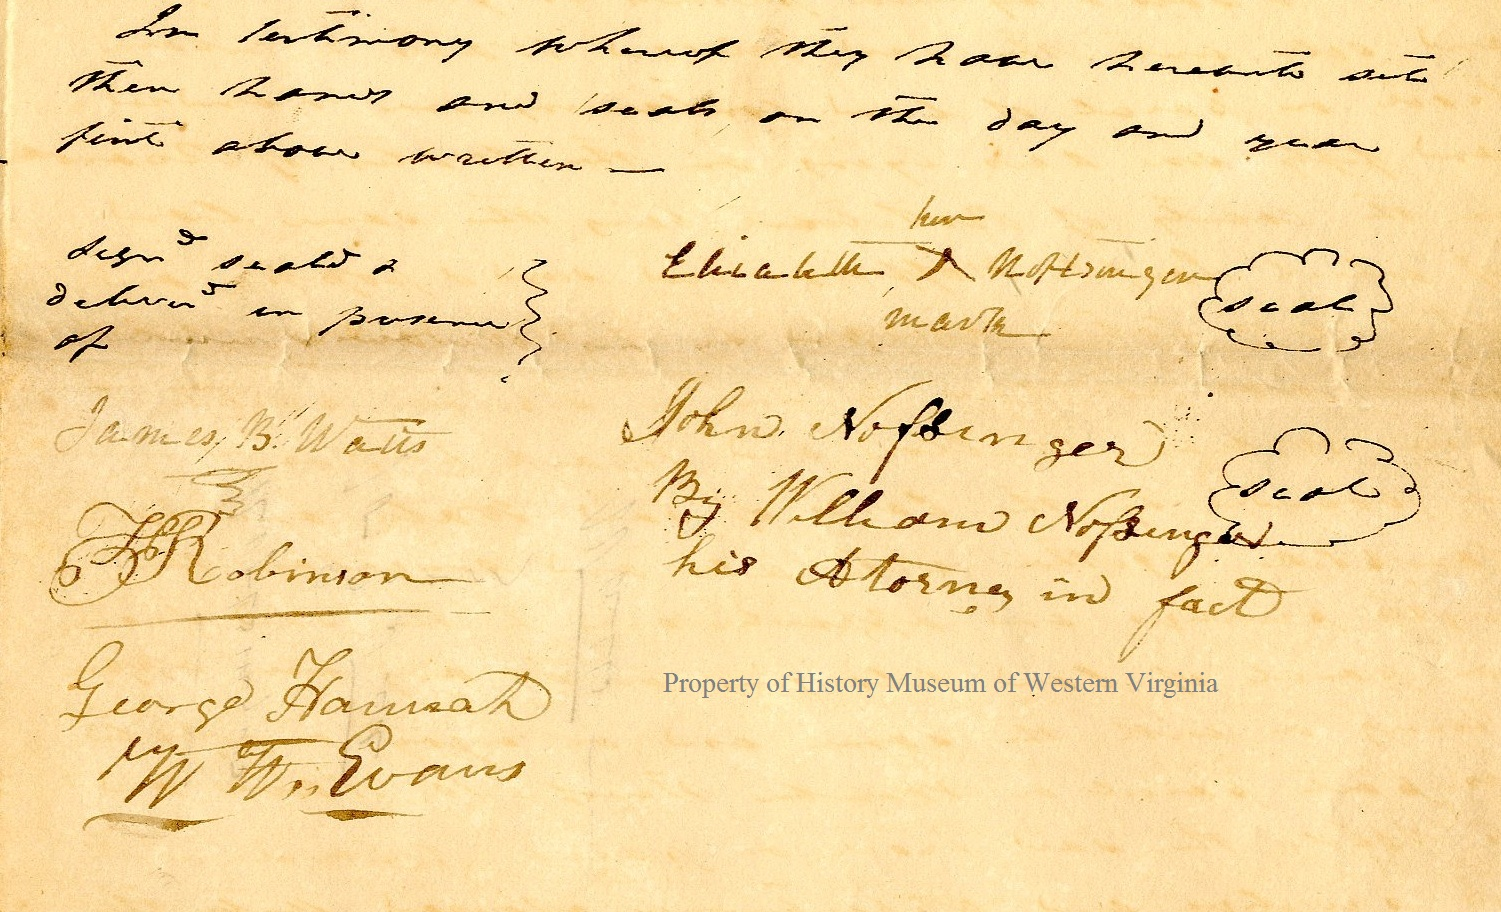 roanoke and western virginia glimpses of the past watts by his attorney william noffsinger of the one part and edward watts of the other part conveying a tract of land in botetourt now roanoke county